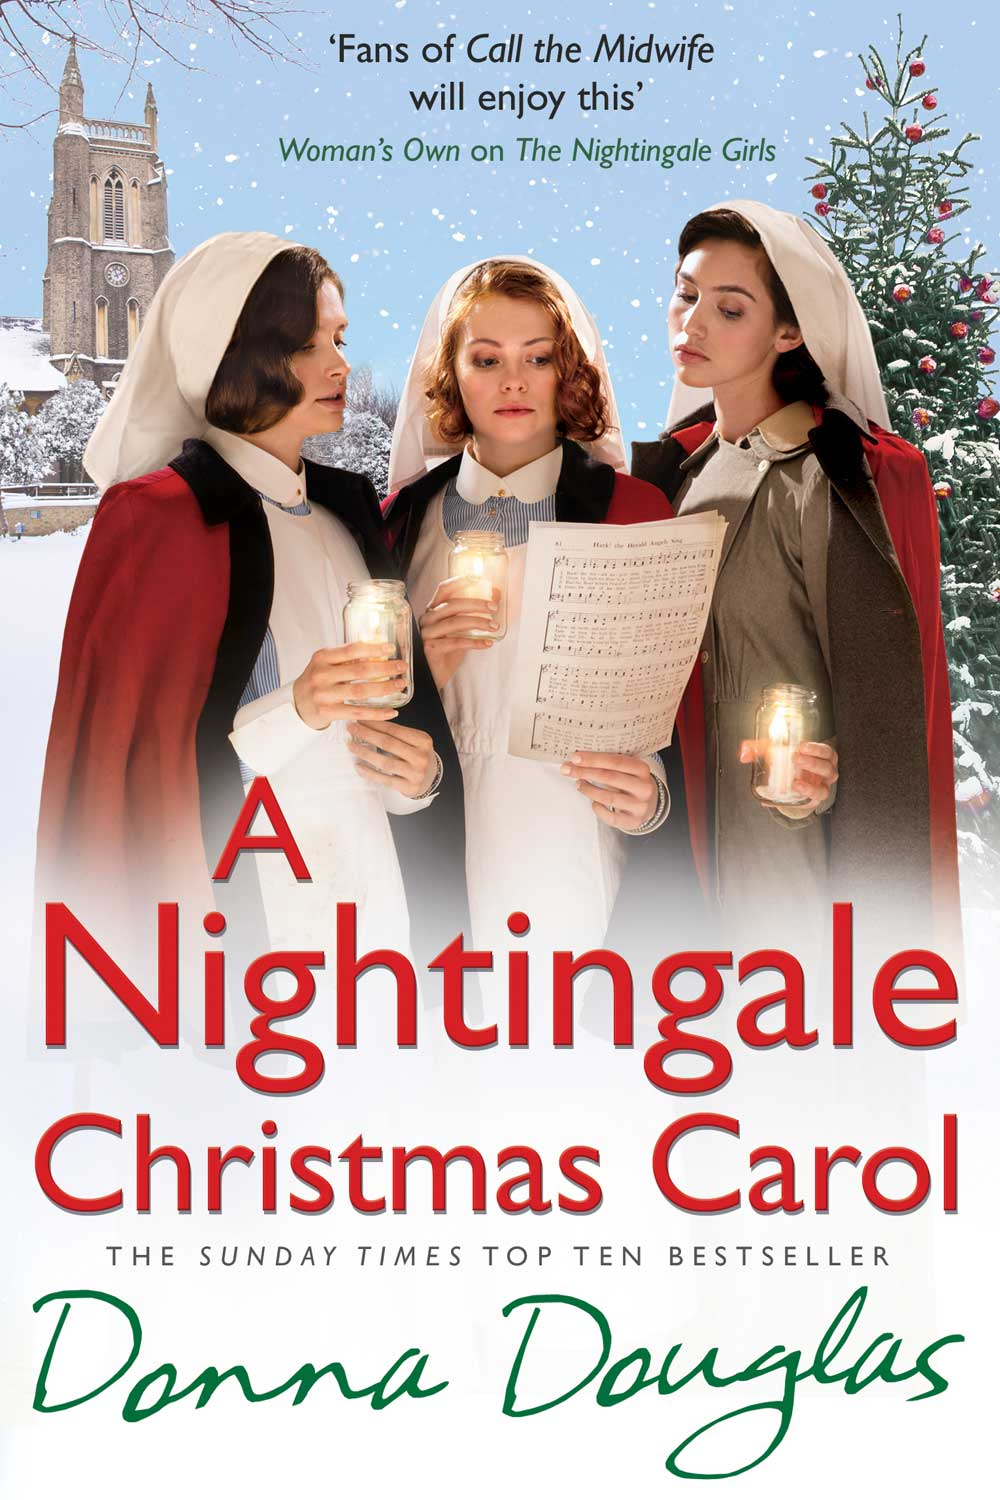 A-Nightingale-Christmas-Carol-Donna-Douglas